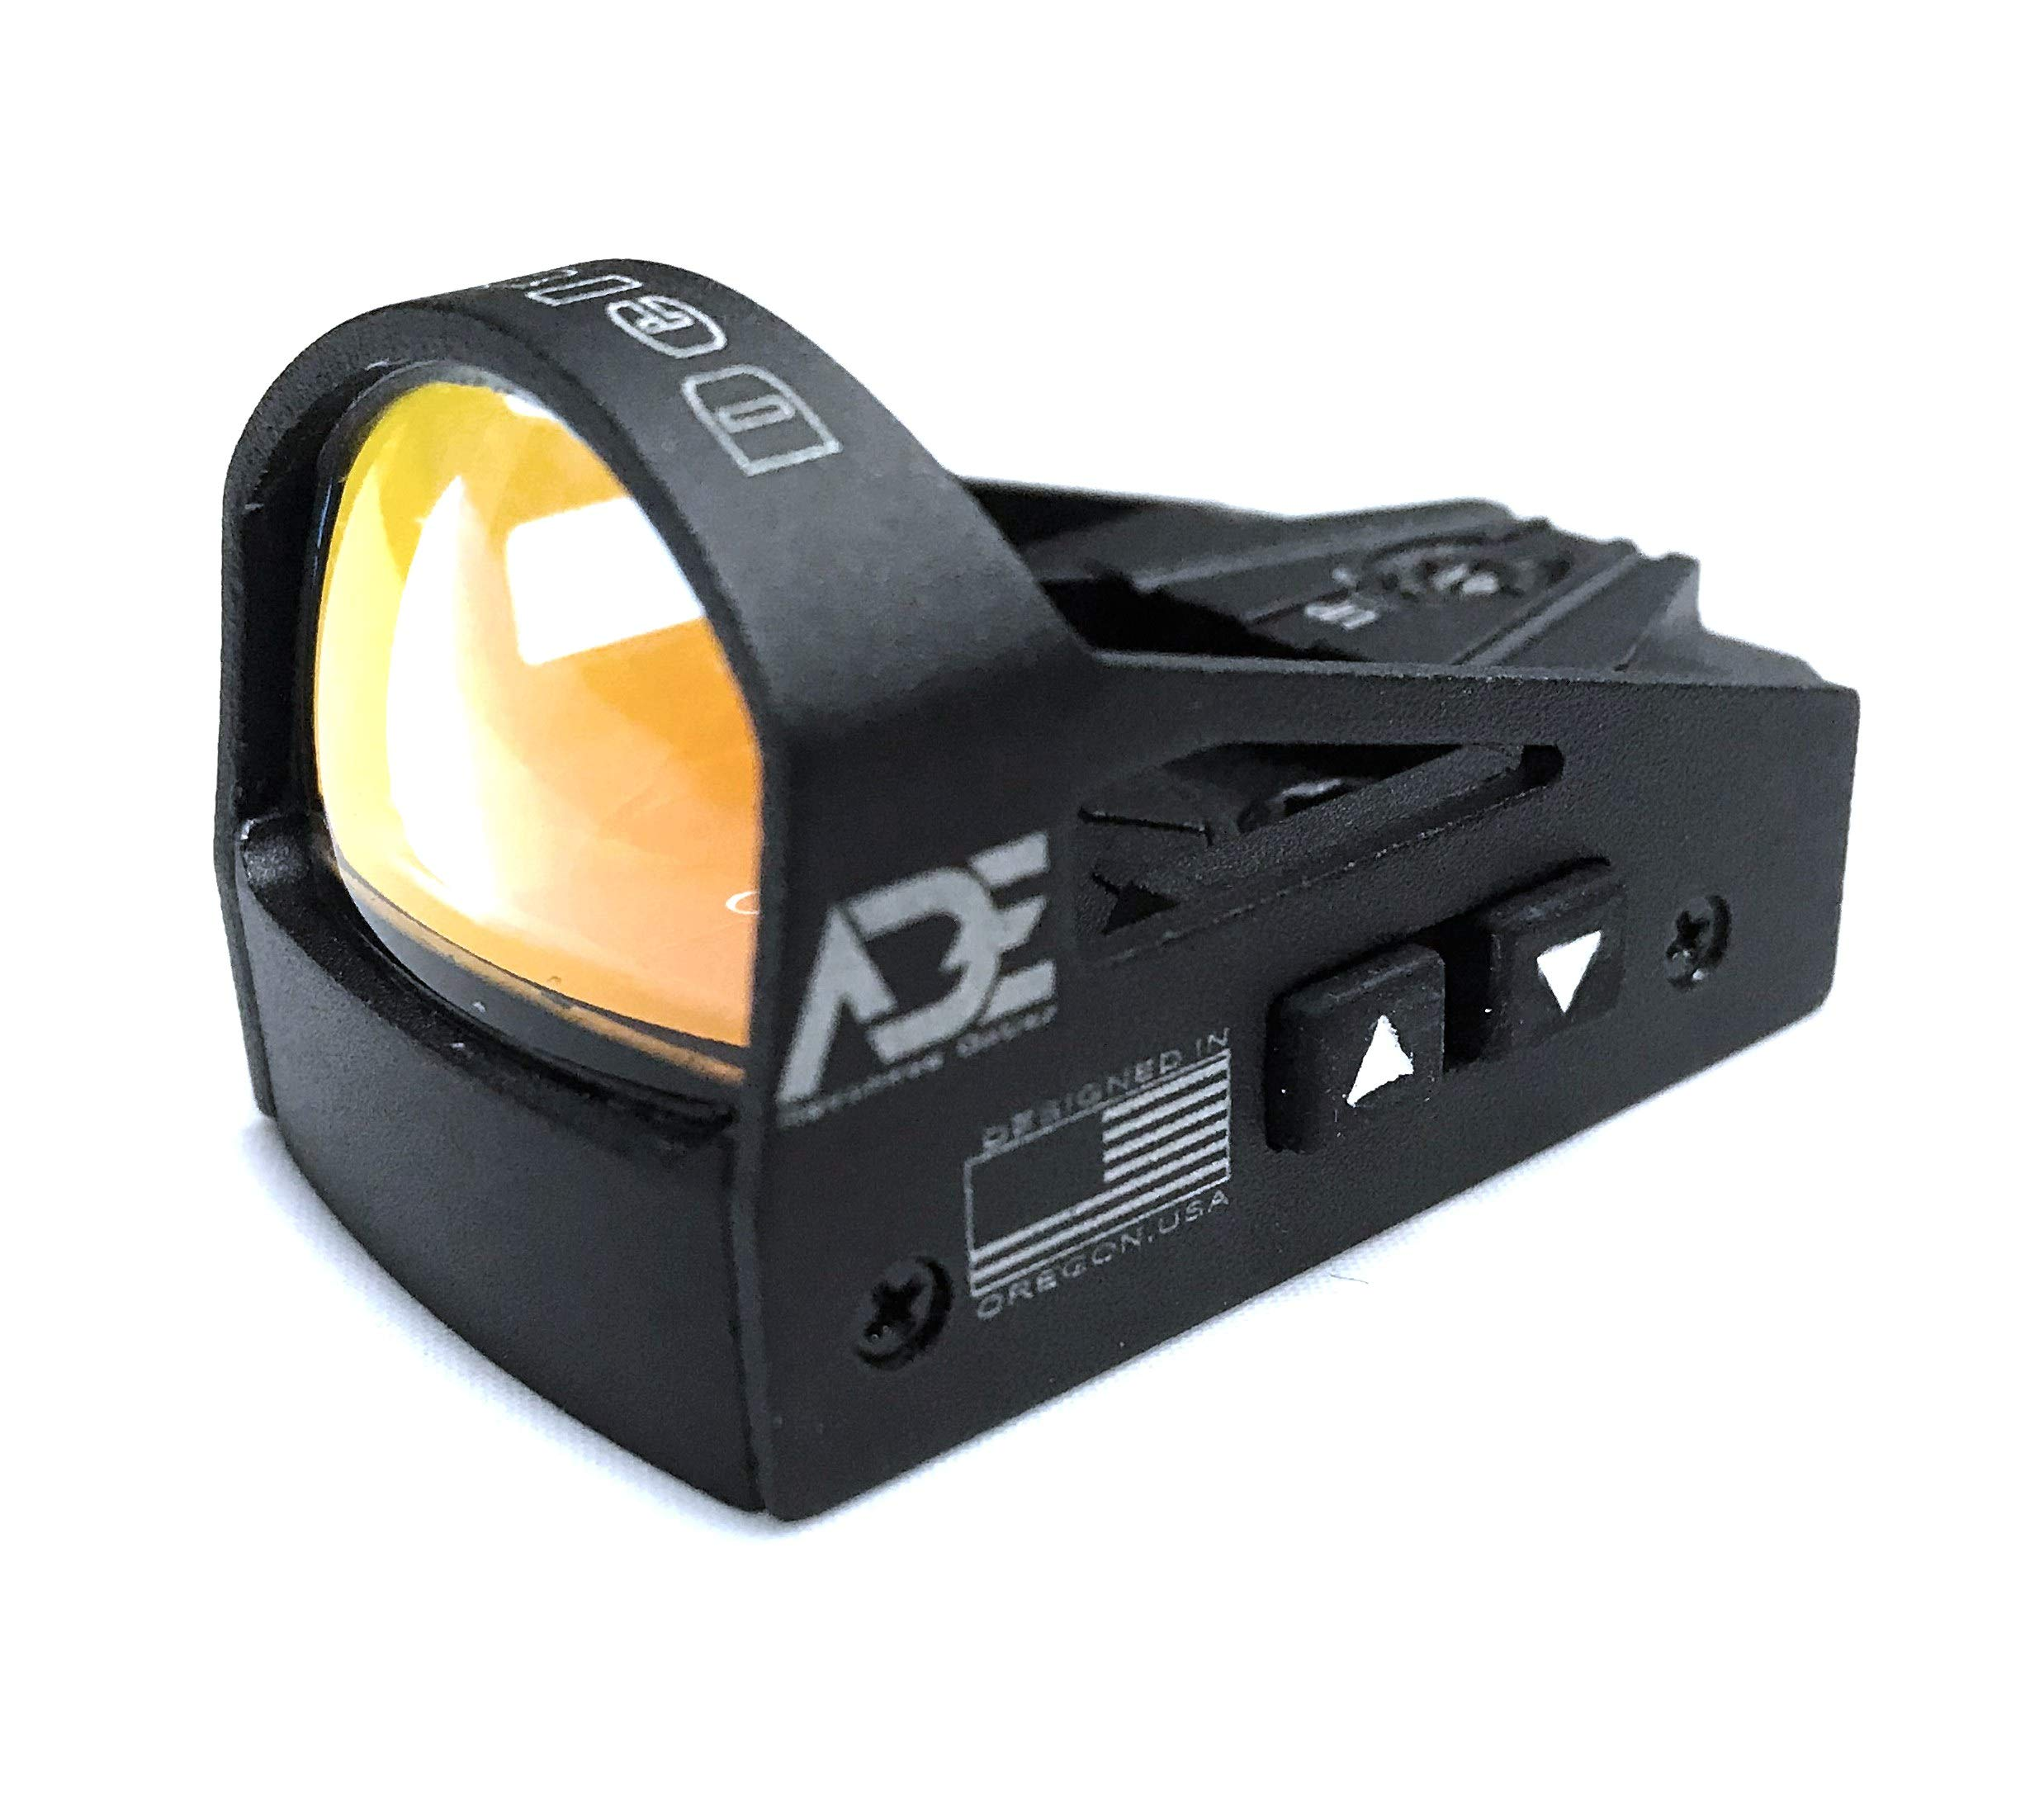 Ade Advanced Optics Delta RD3-012 Red Dot Reflex Sight with Colt 1911 Standard Pistol mounting Plate by Ade Advanced Optics